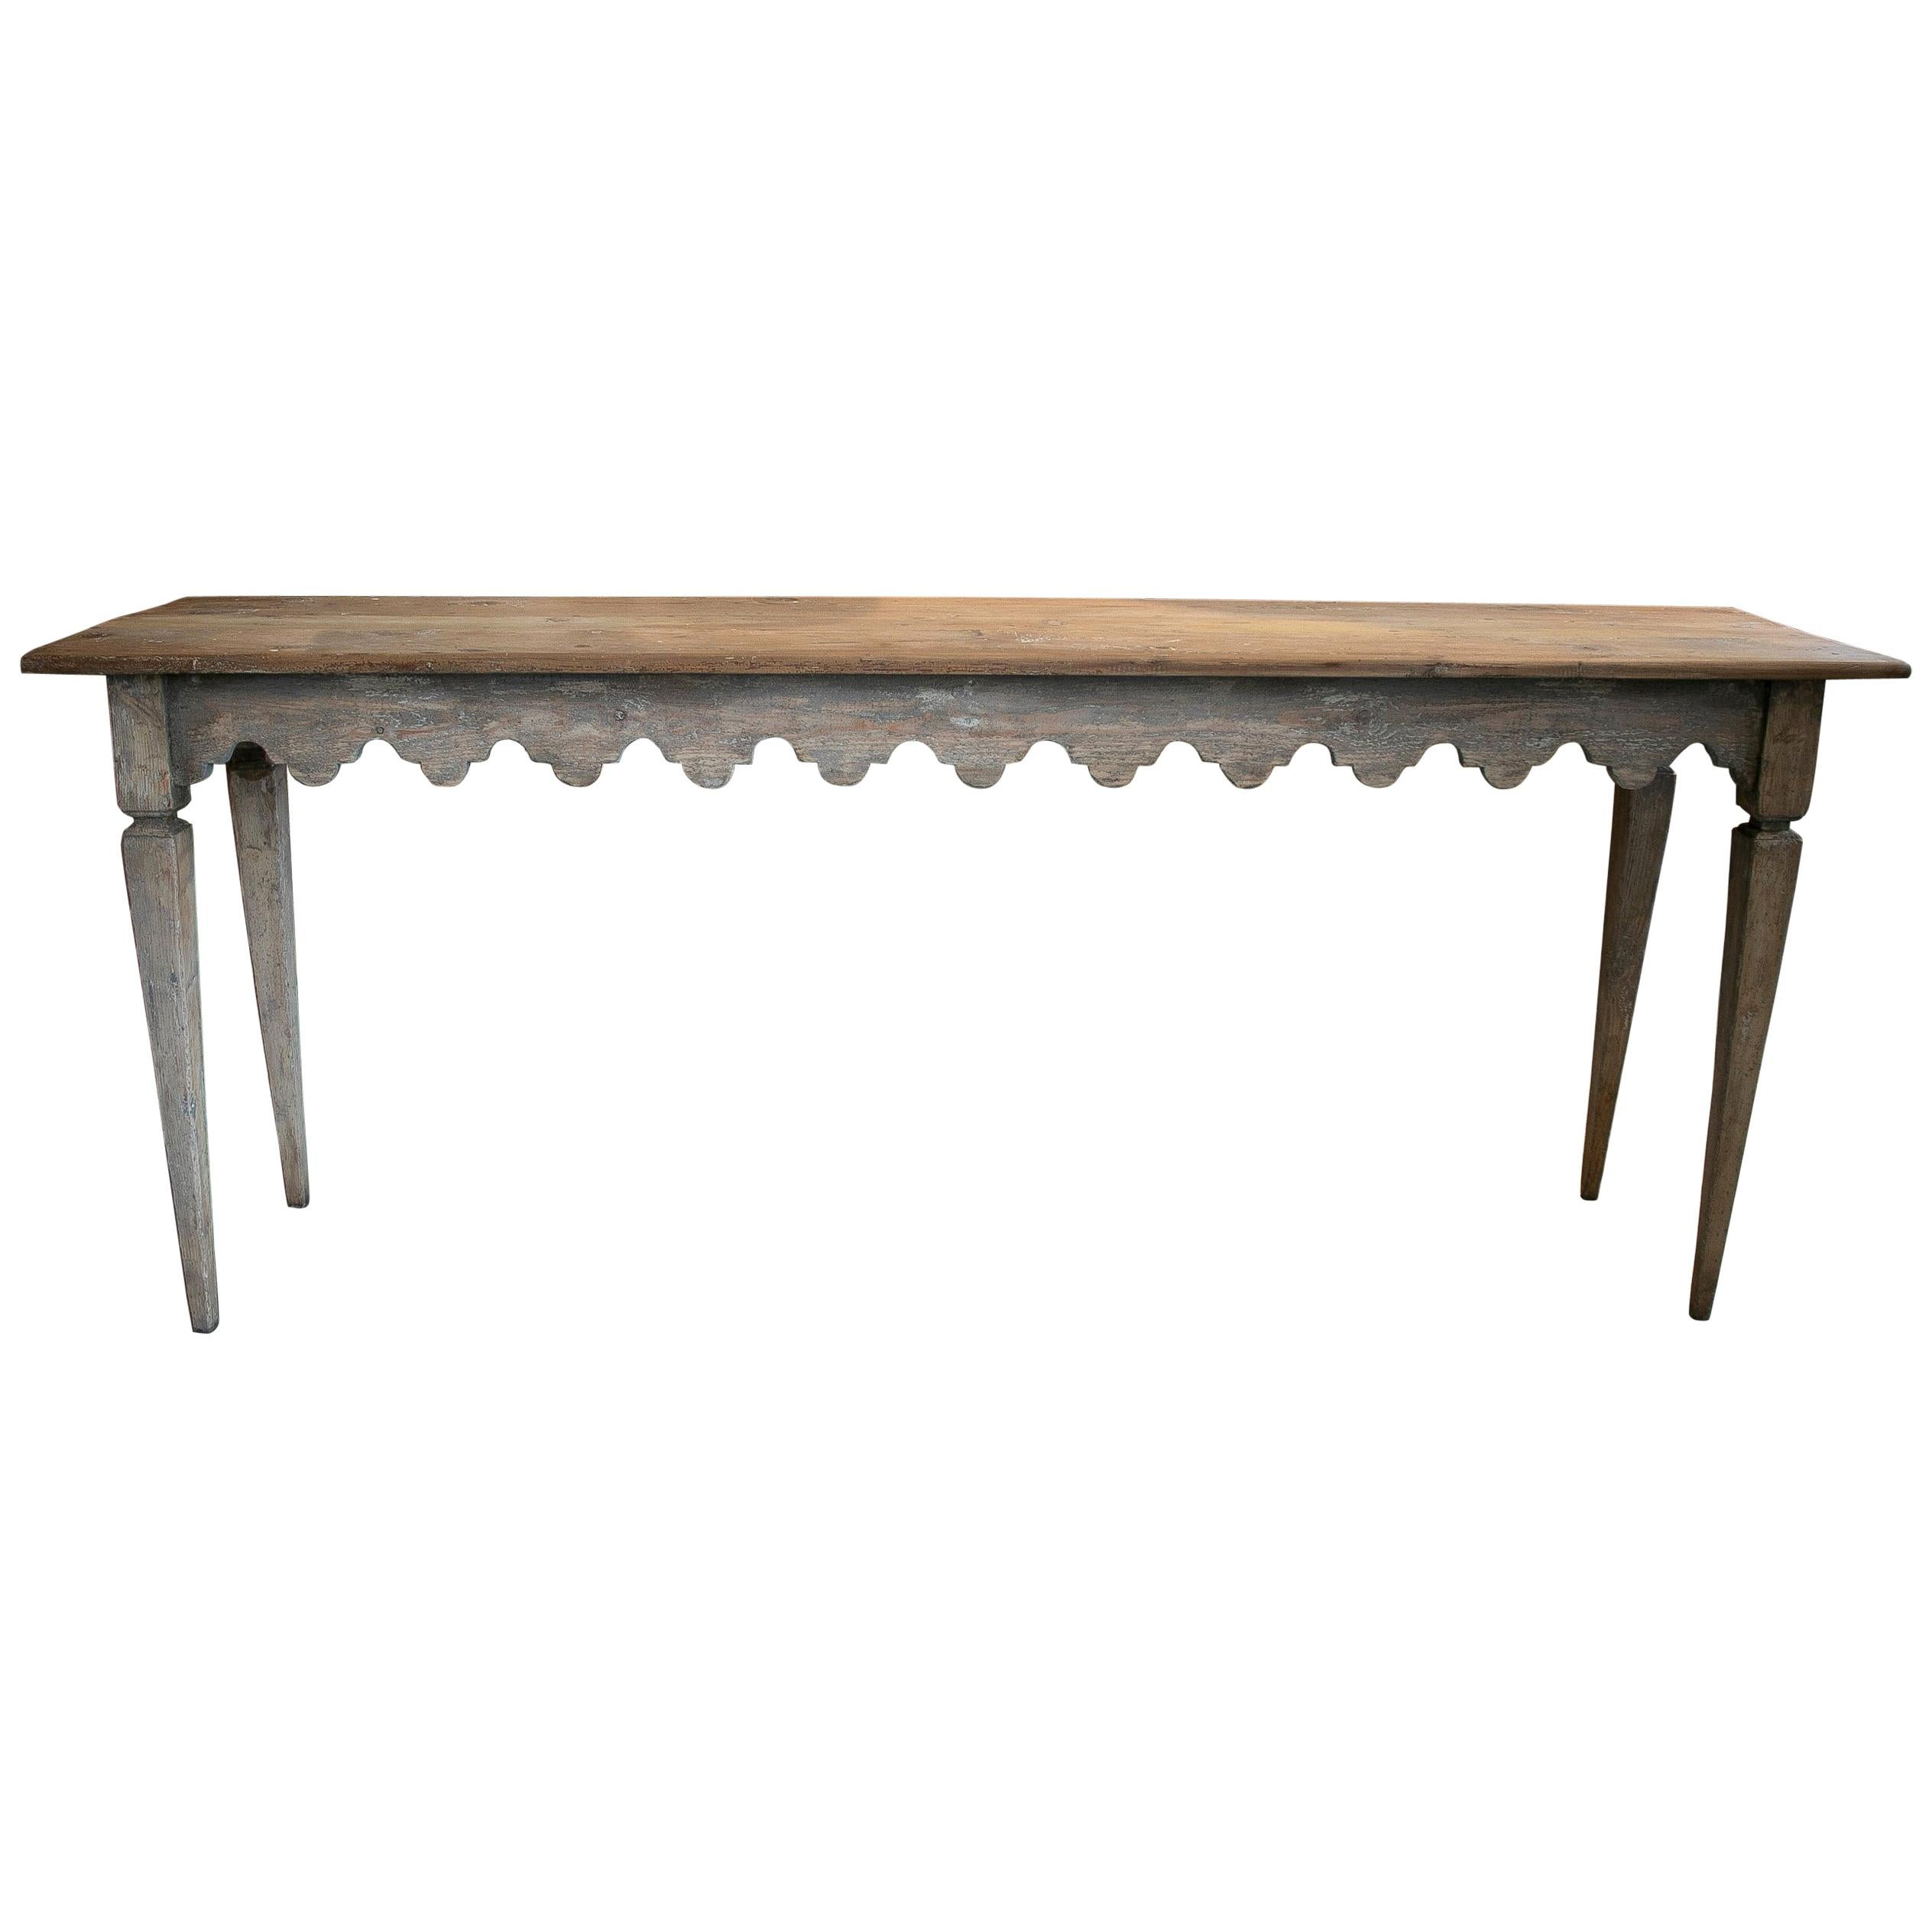 1980s Lime Washed Wooden Console Table w/ Ornamental Geometric Skirt